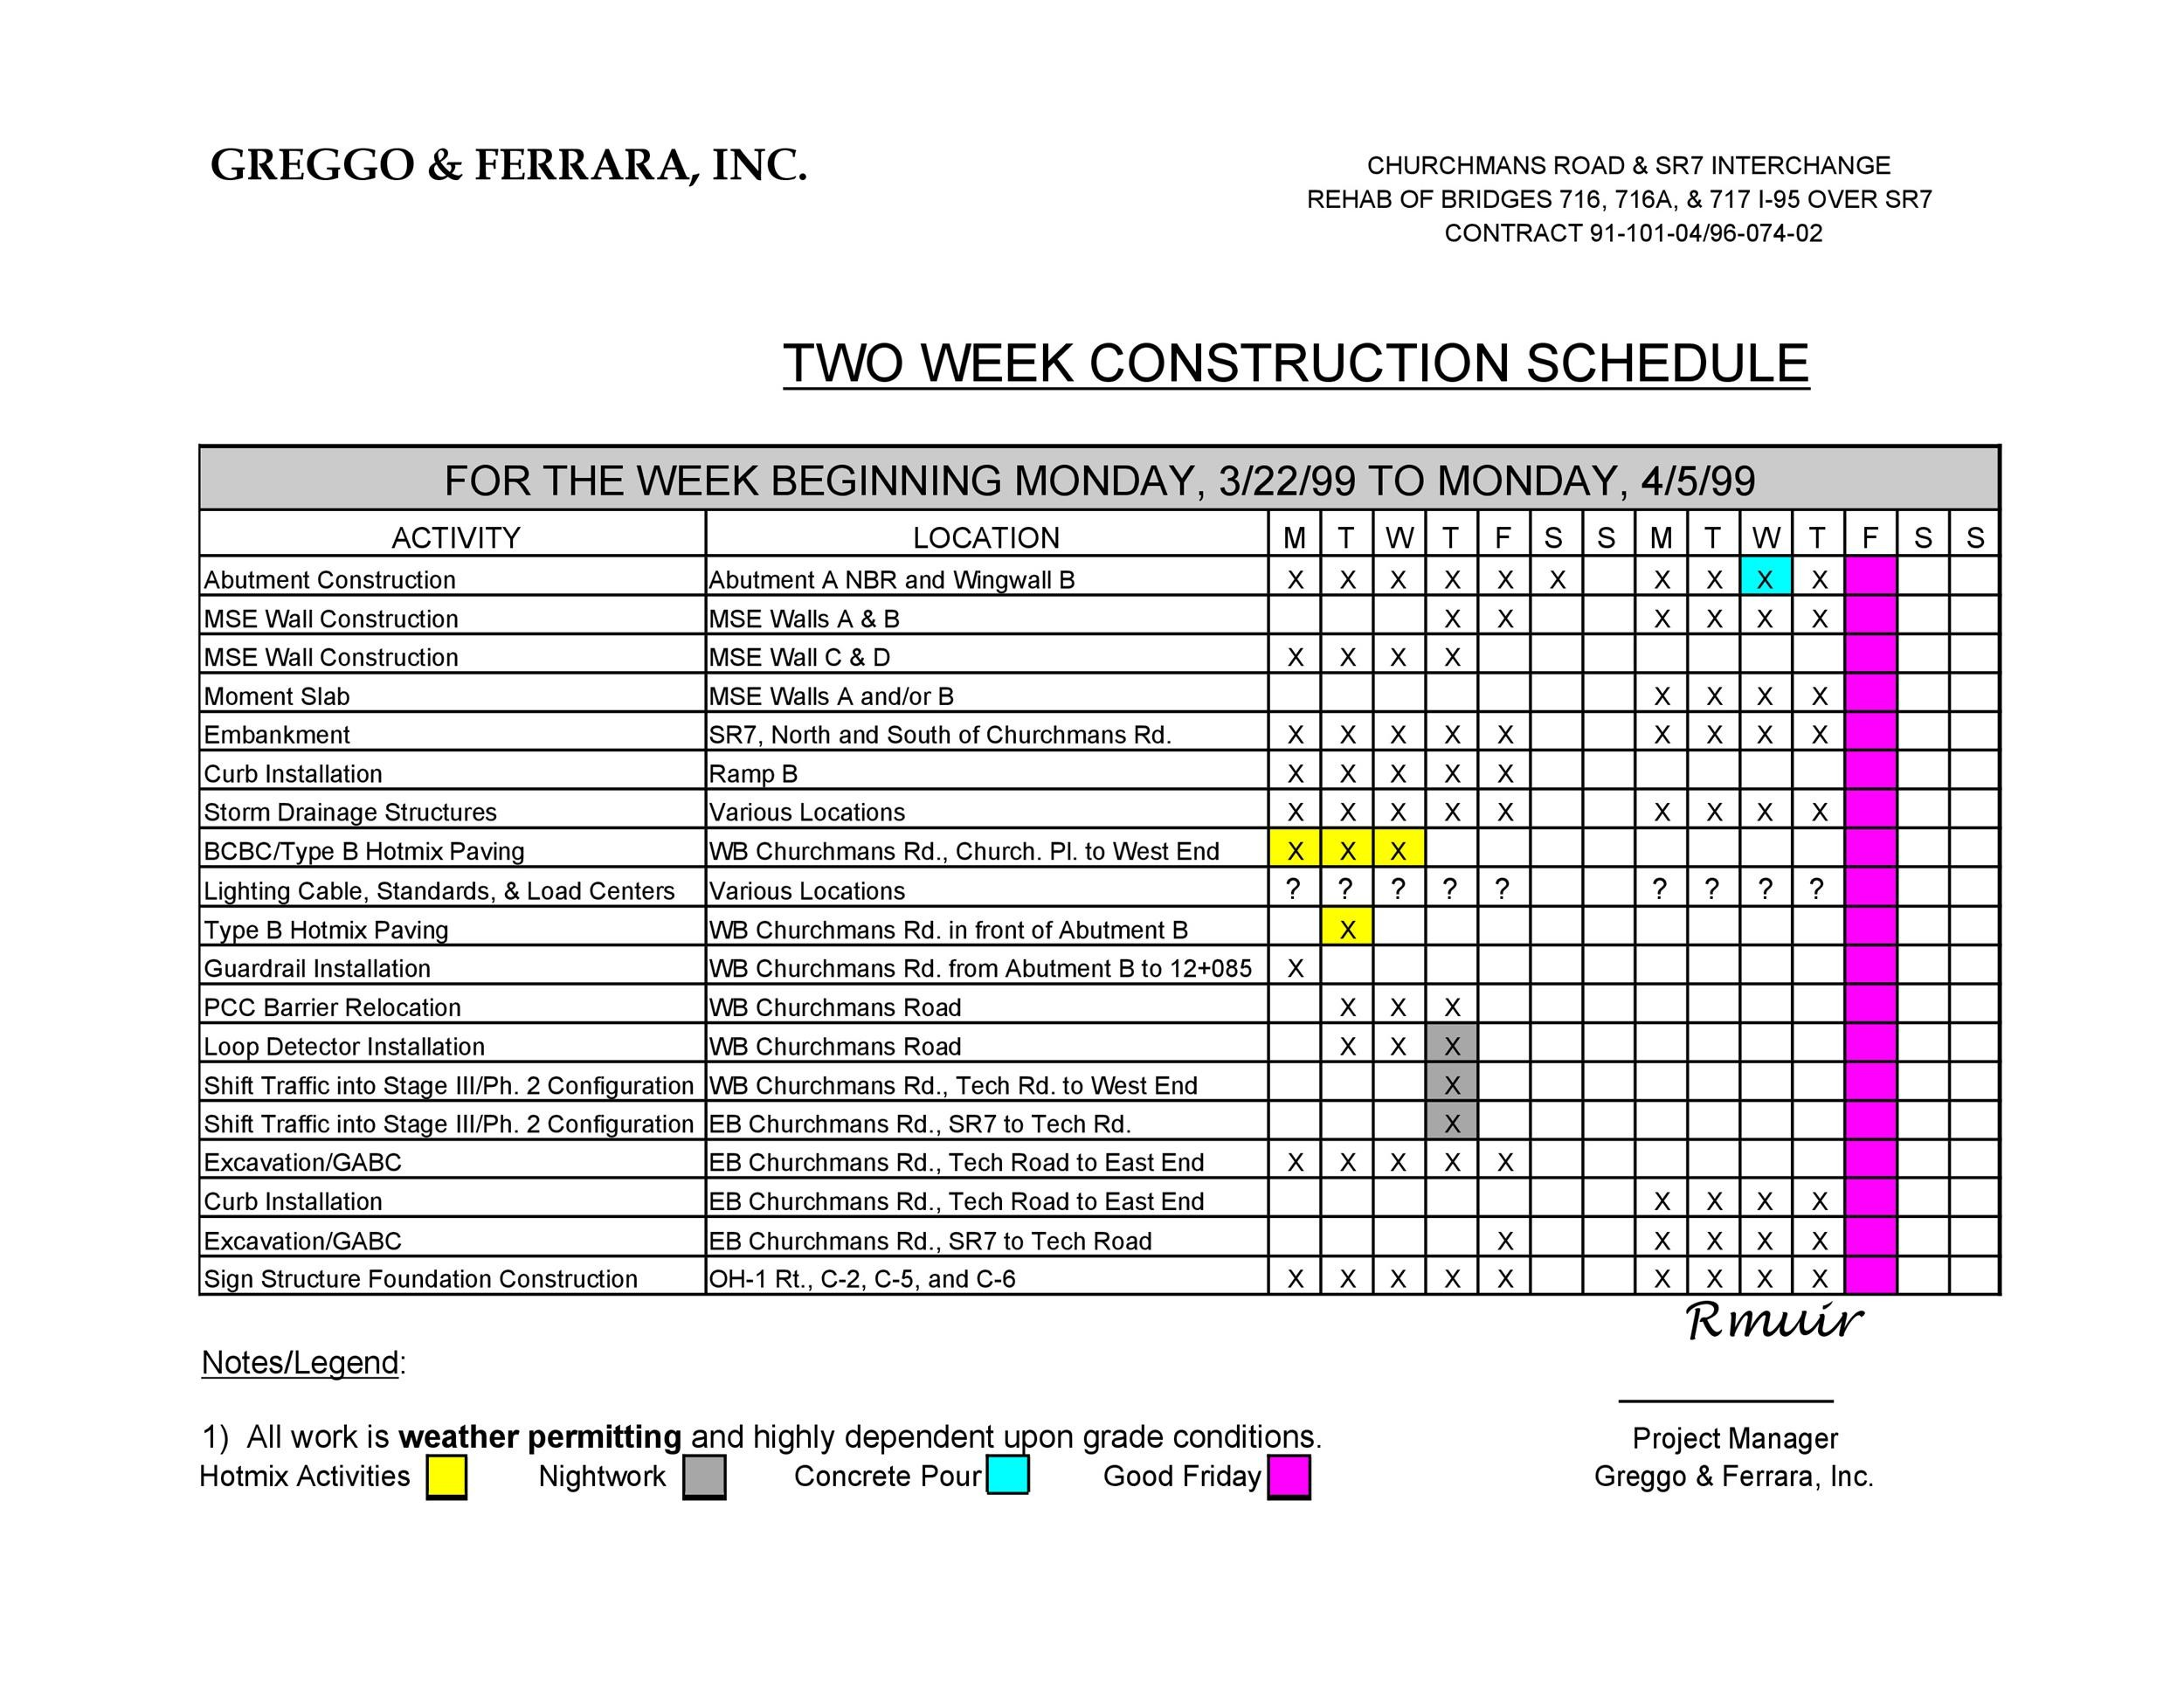 21 Construction Schedule Templates in Word  Excel ᐅ Template Lab